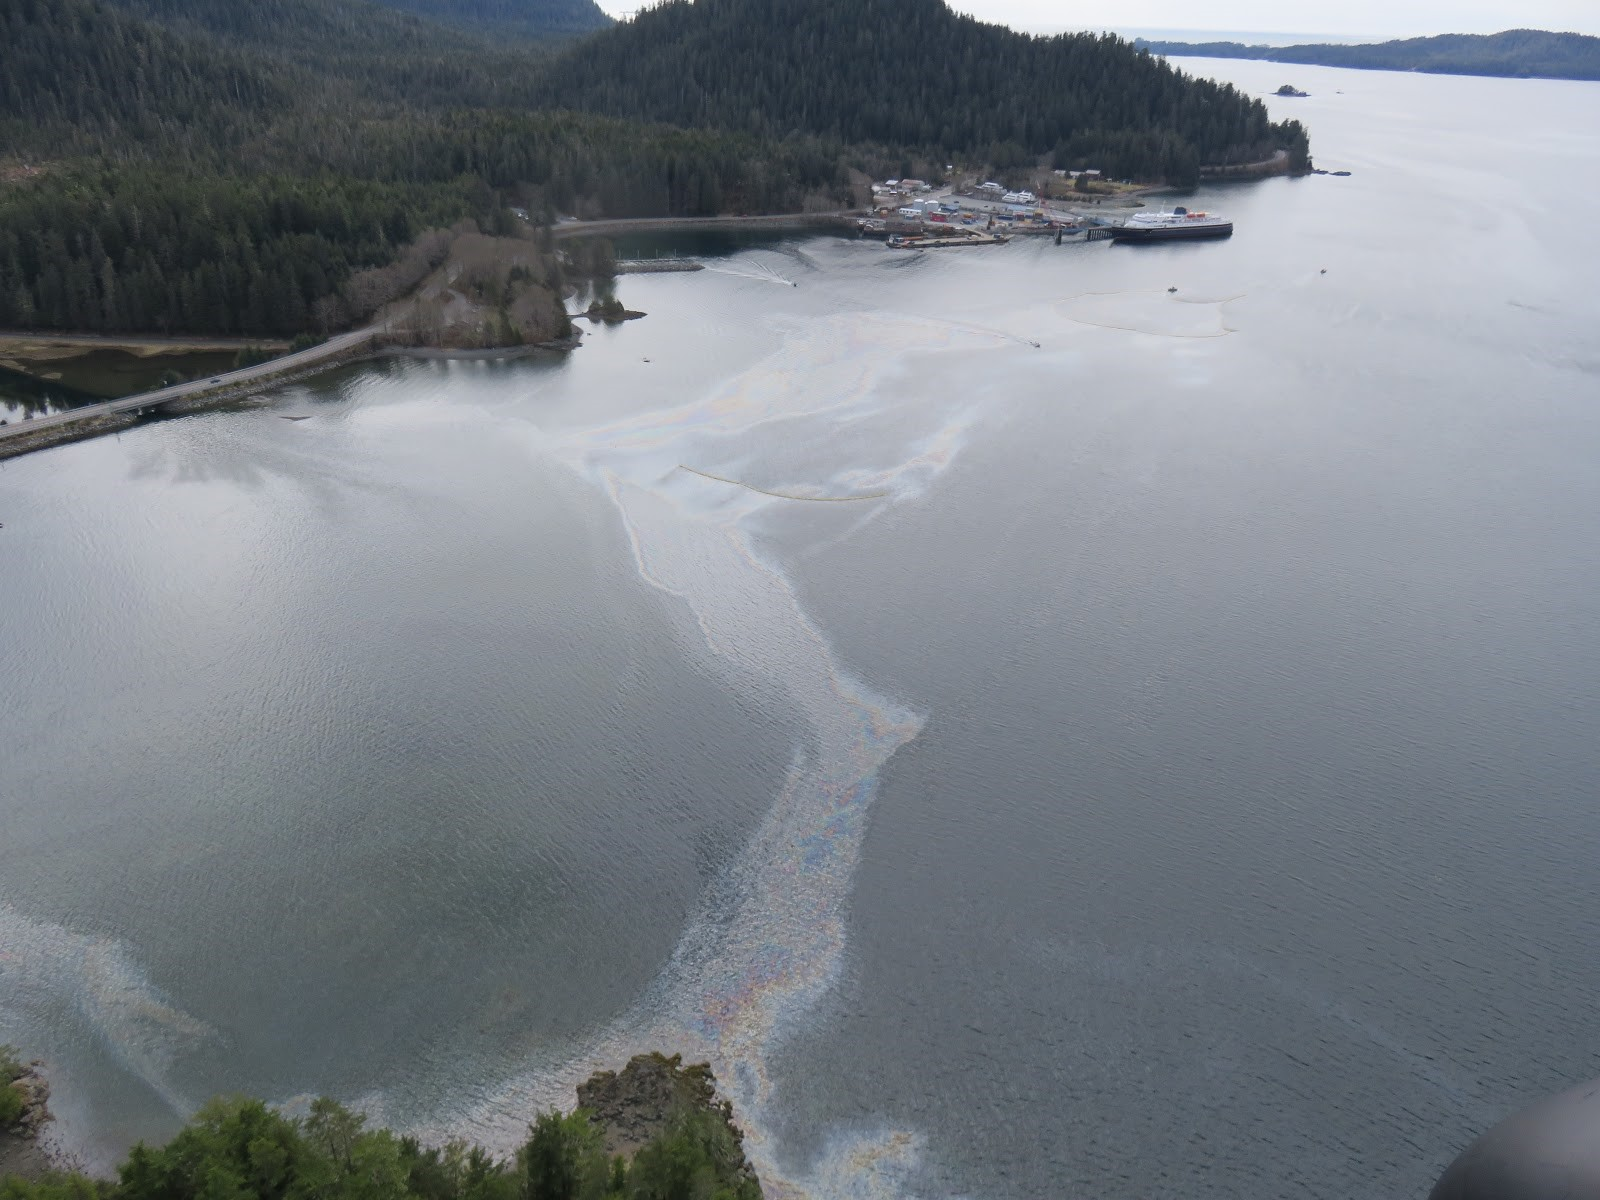 Oil sheen, containment boom, and deflection boom in Starrigavan Bay on April 23, 2017. (Photo provided by the US Coast Guard)